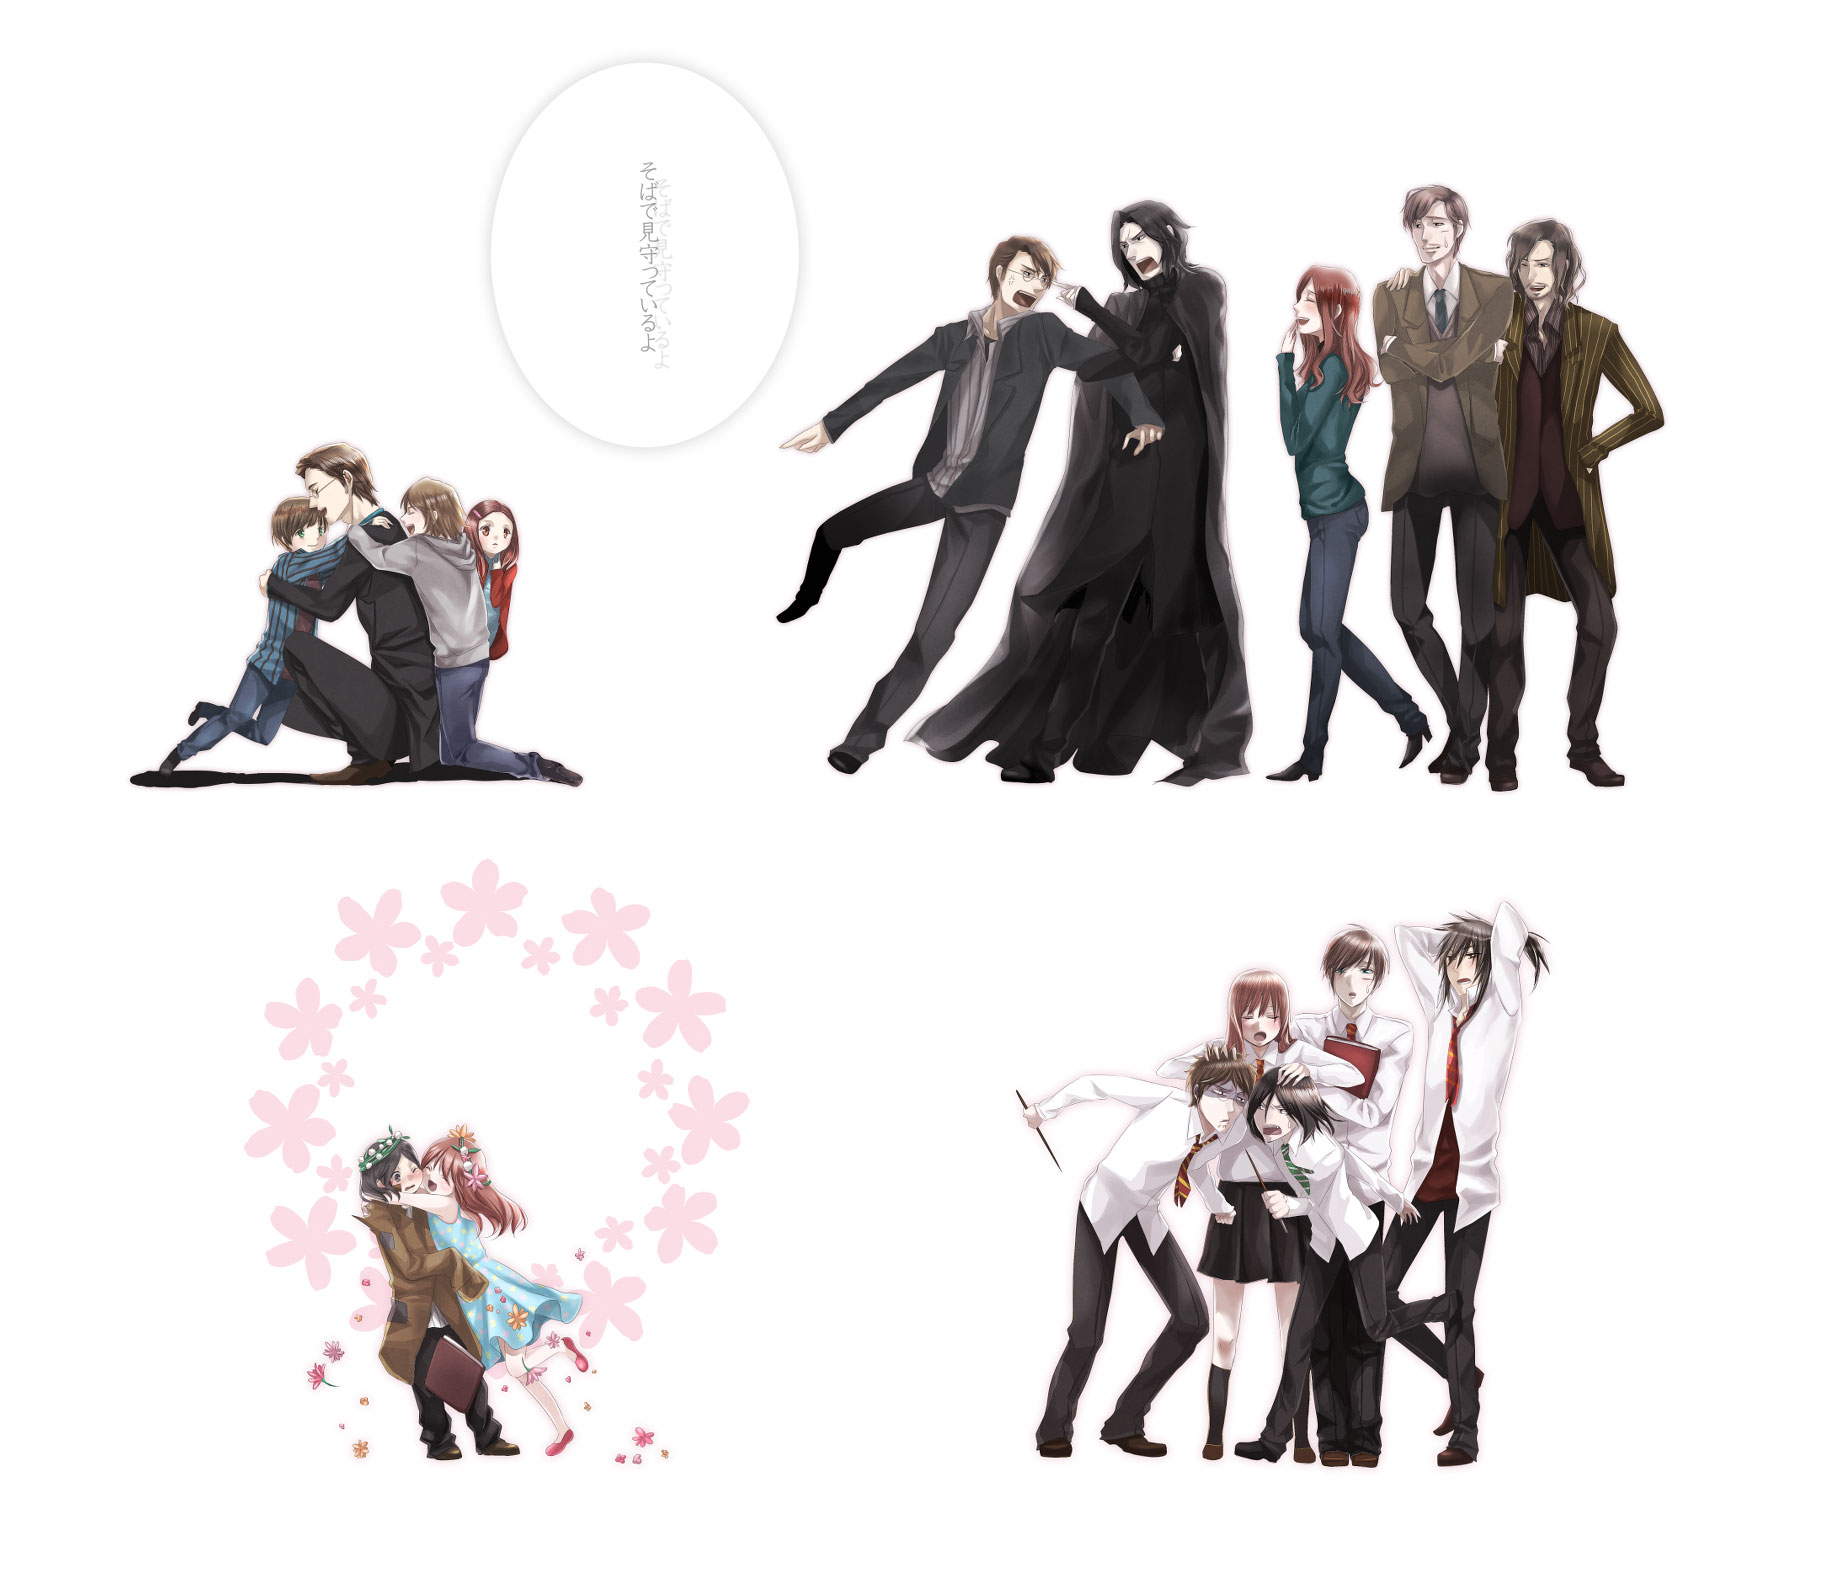 Harry Potter Image #717460 - Zerochan Anime Image Board